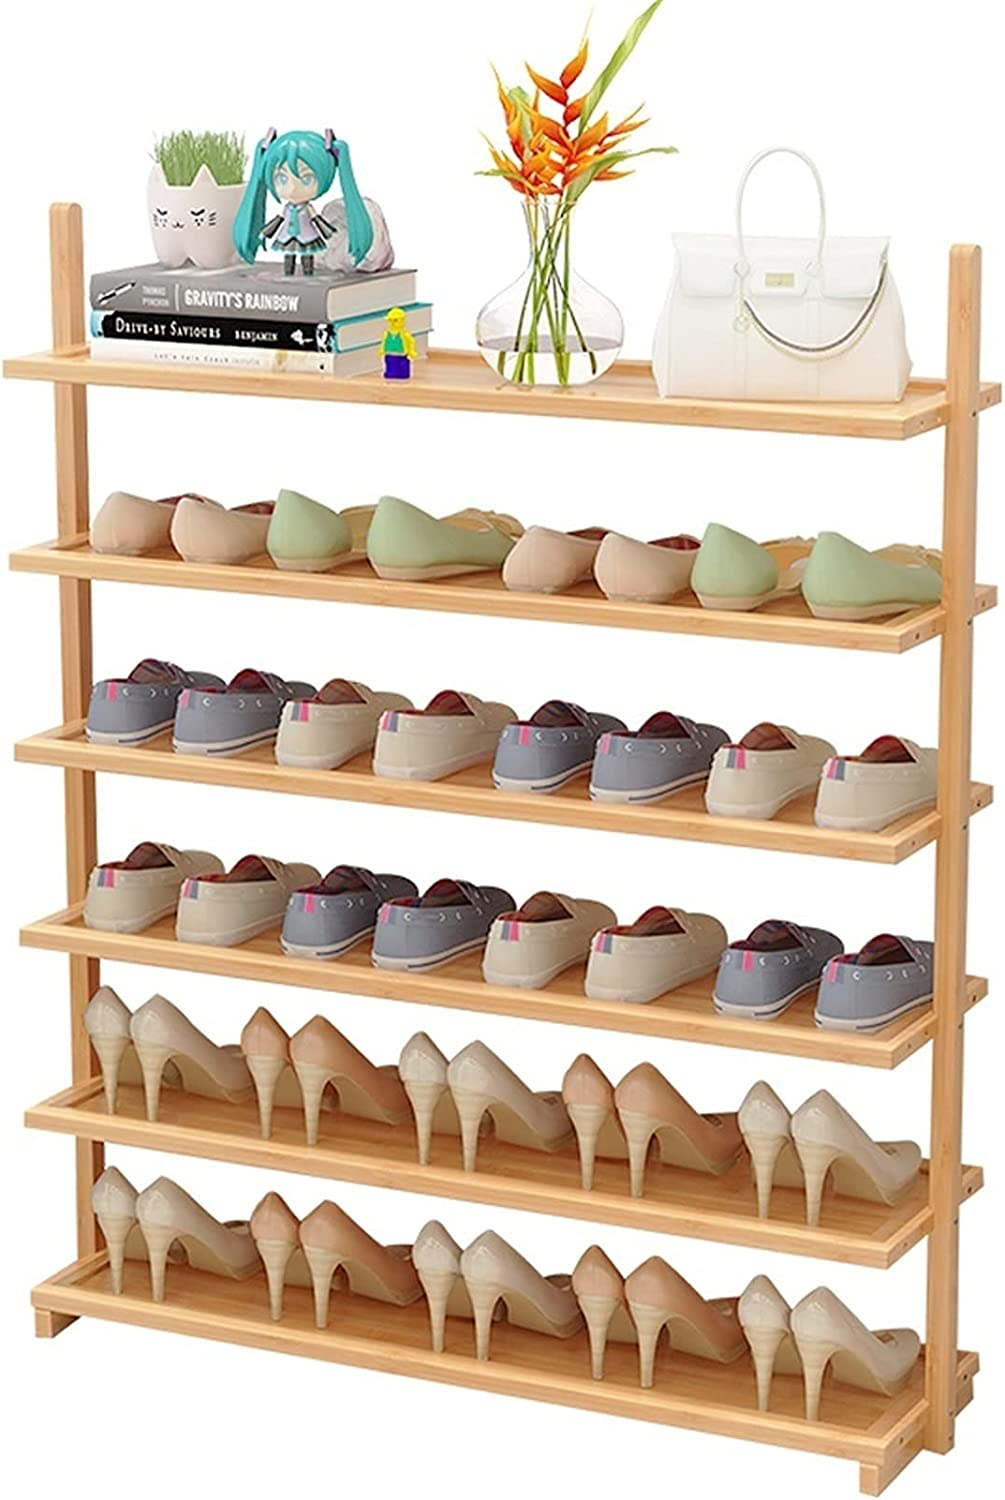 Max 84% OFF LOMJK Shoe Racks All stores are sold 6 Tier Bamboo Free-Standing Rack Sho Small